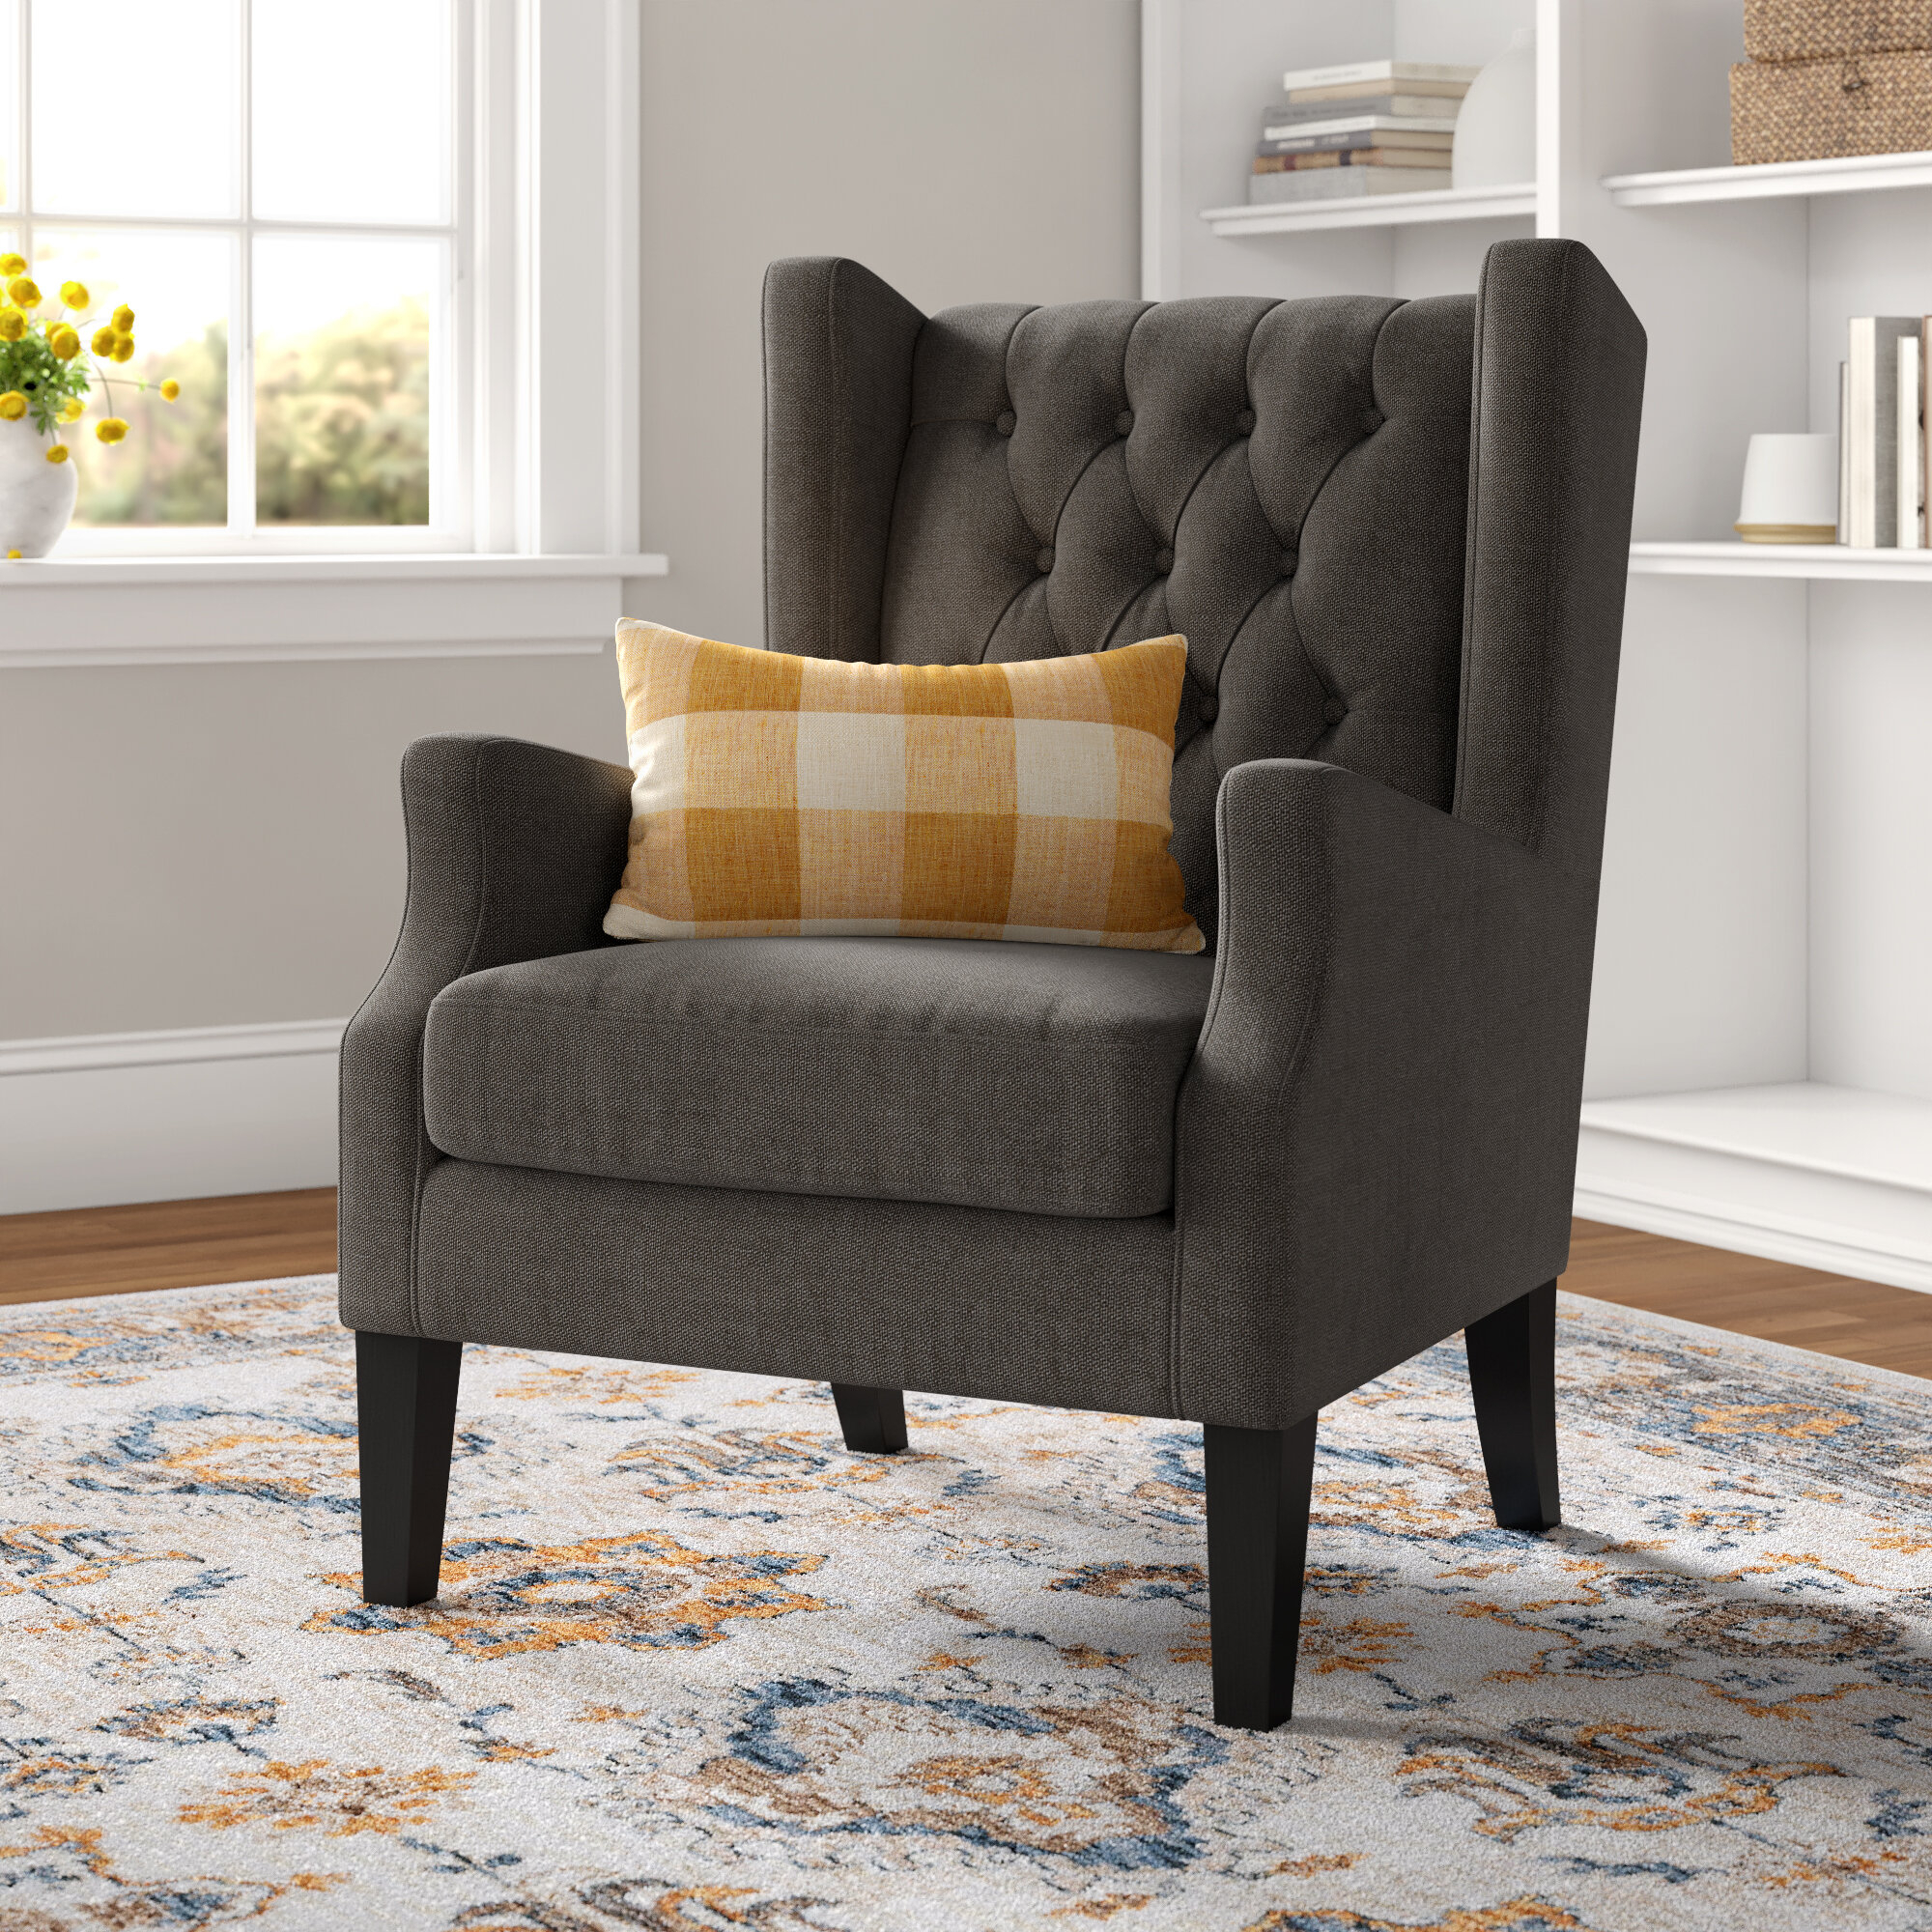 Allis Wingback Chair With Regard To Allis Tufted Polyester Blend Wingback Chairs (View 14 of 15)